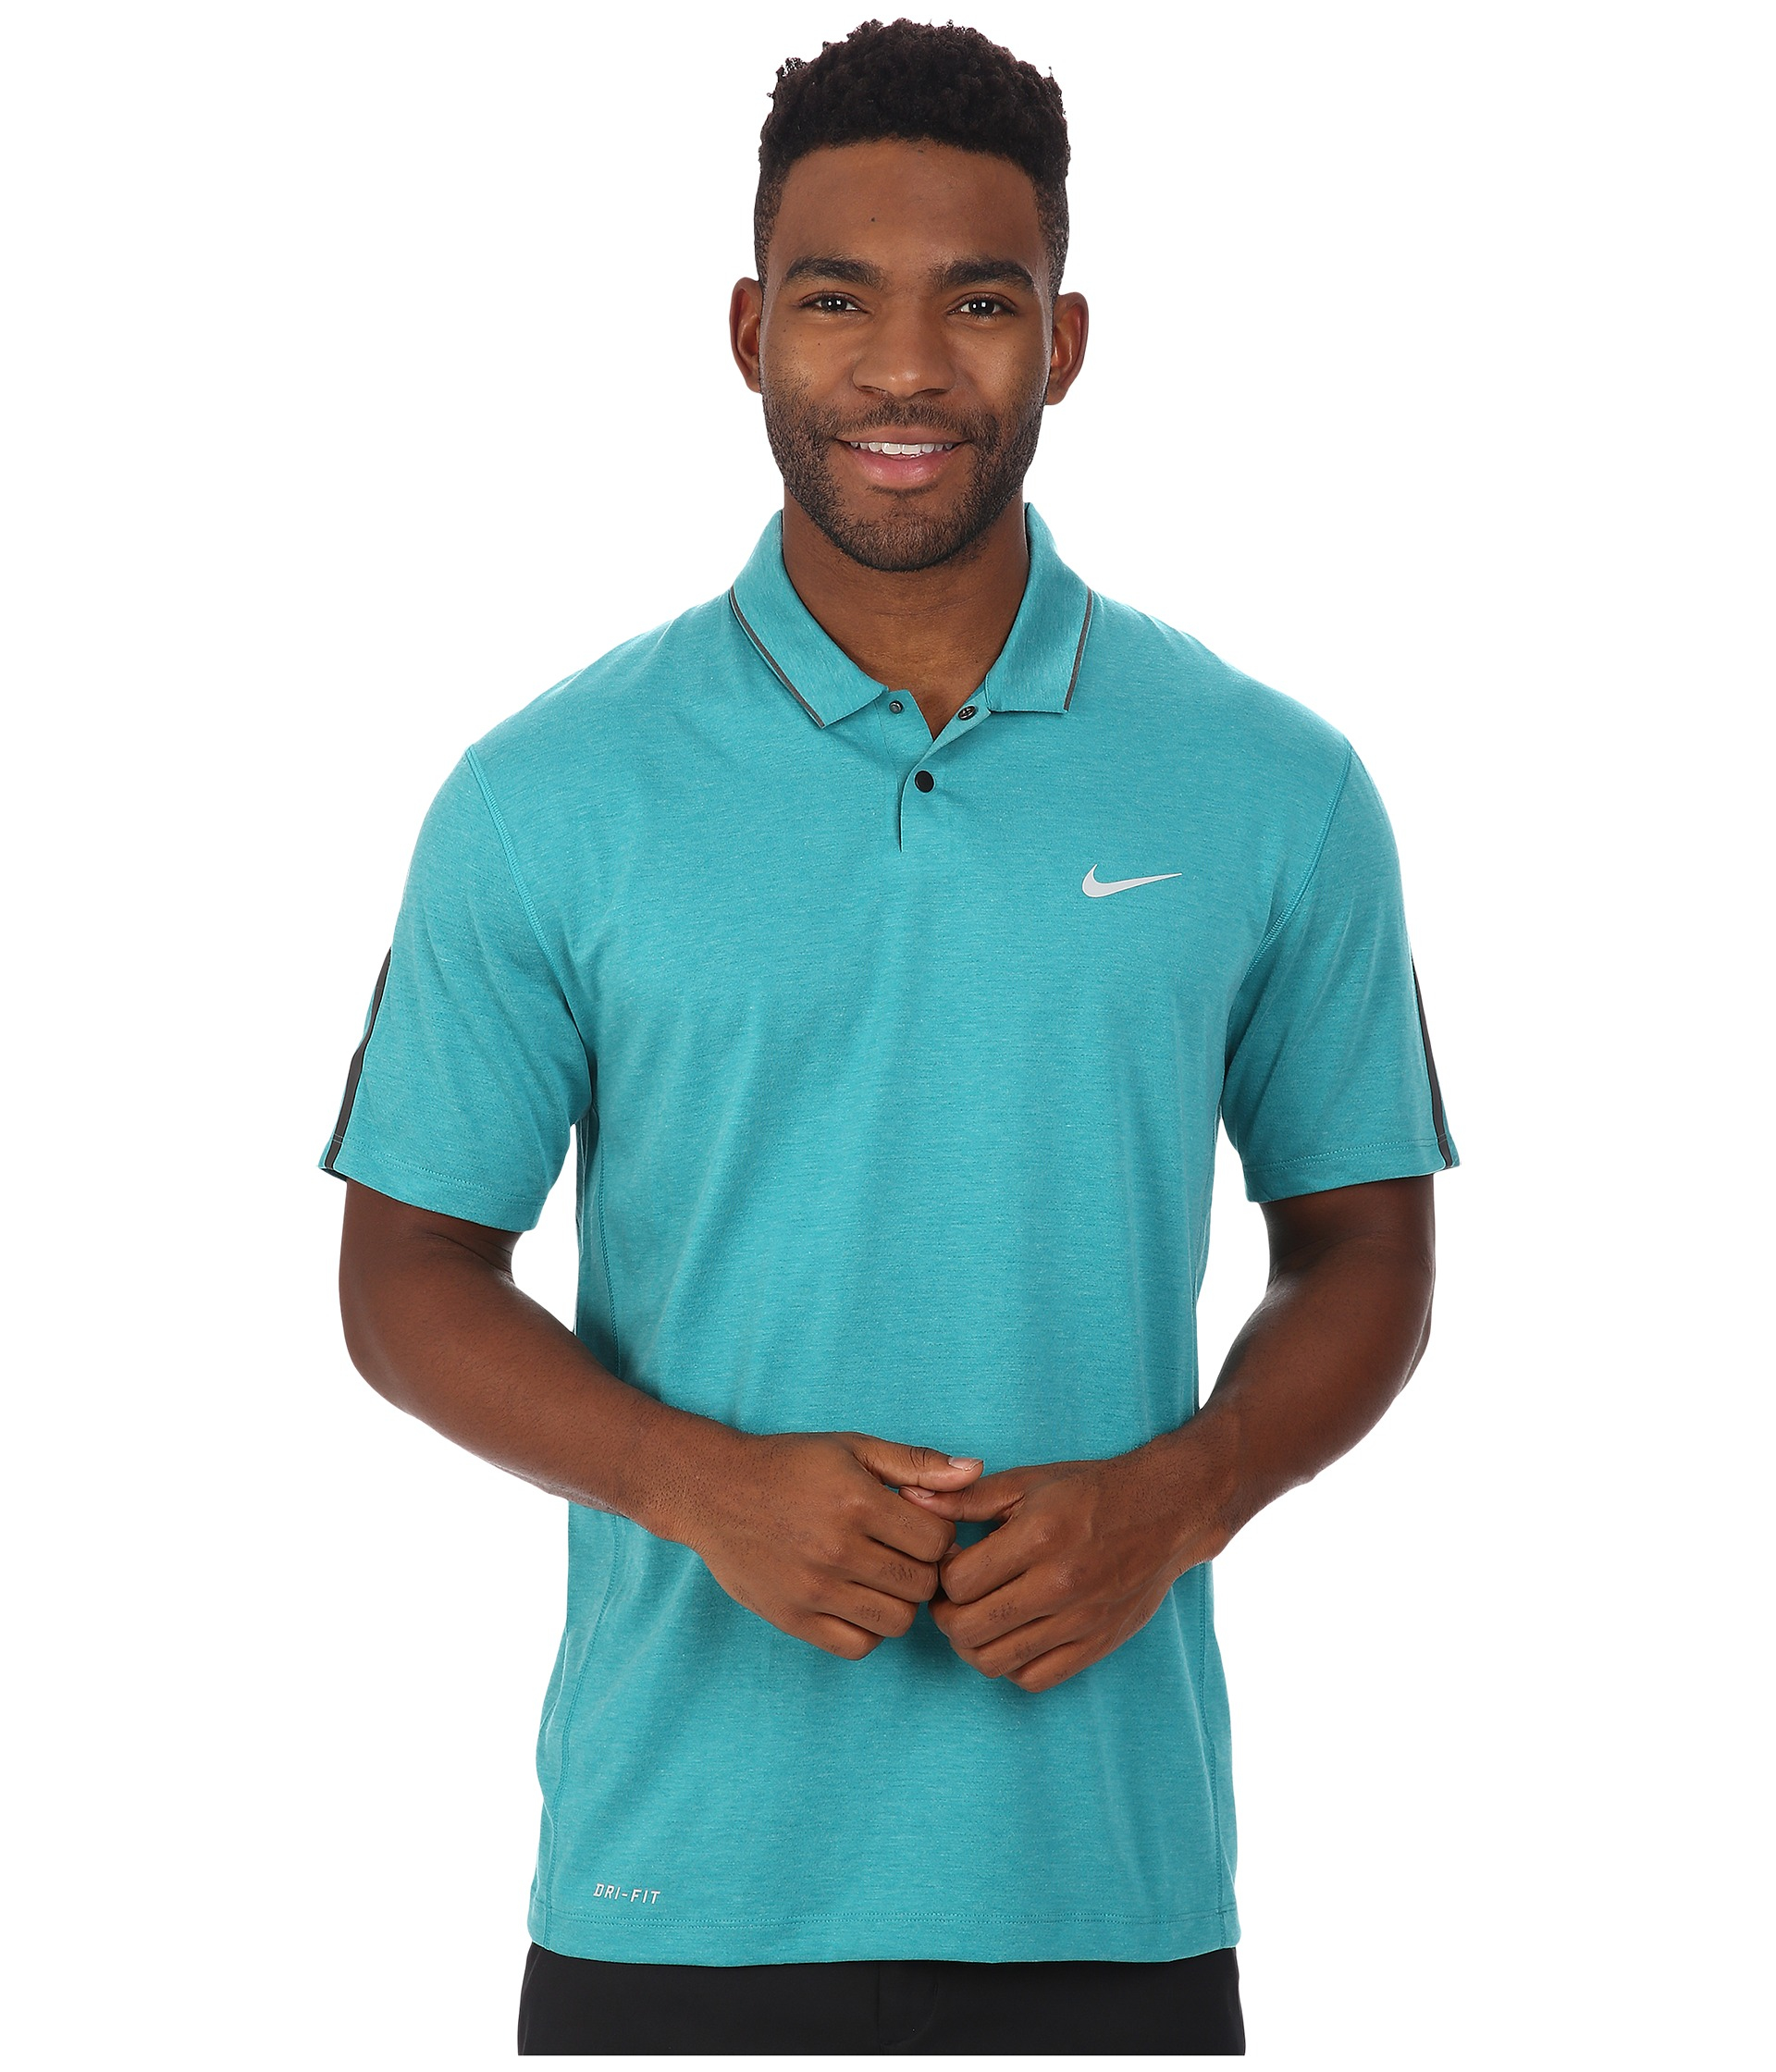 Wholesale Nike Golf Polo Shirts Bcd Tofu House